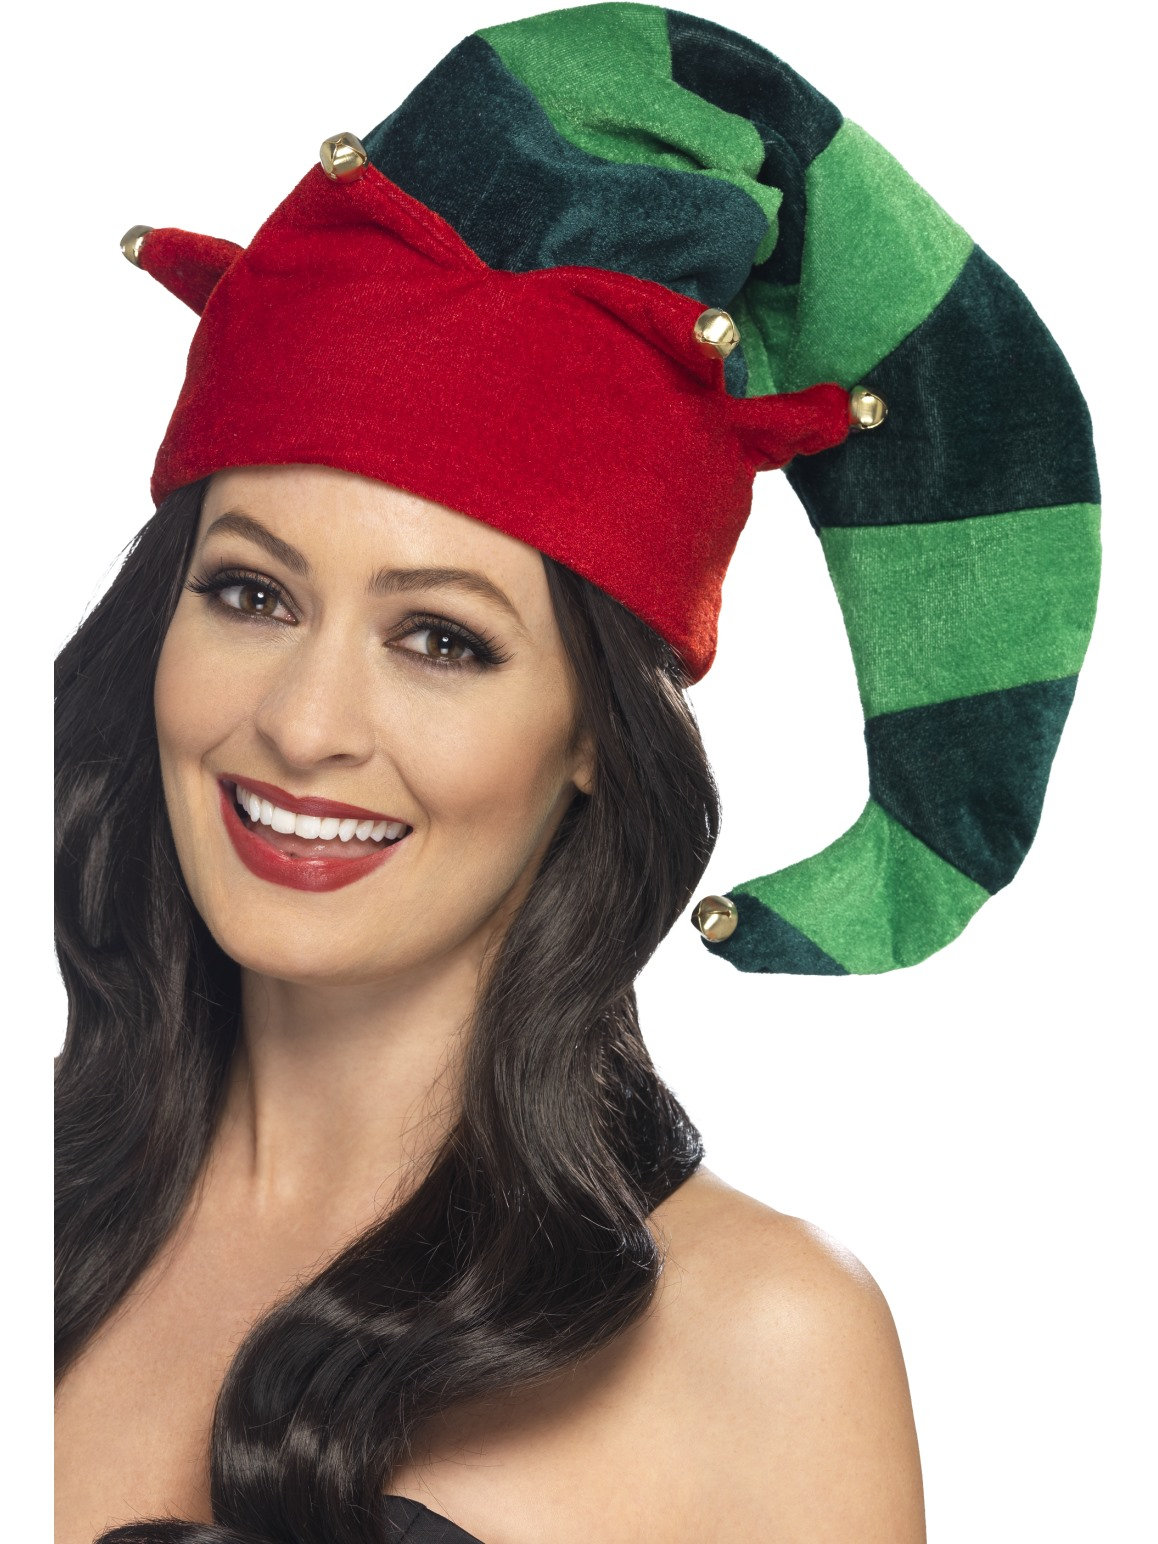 35e865f9e45 Details about Plush Elf Hat Christmas Hat With Bells Deluxe Fancy Dress  Accessory